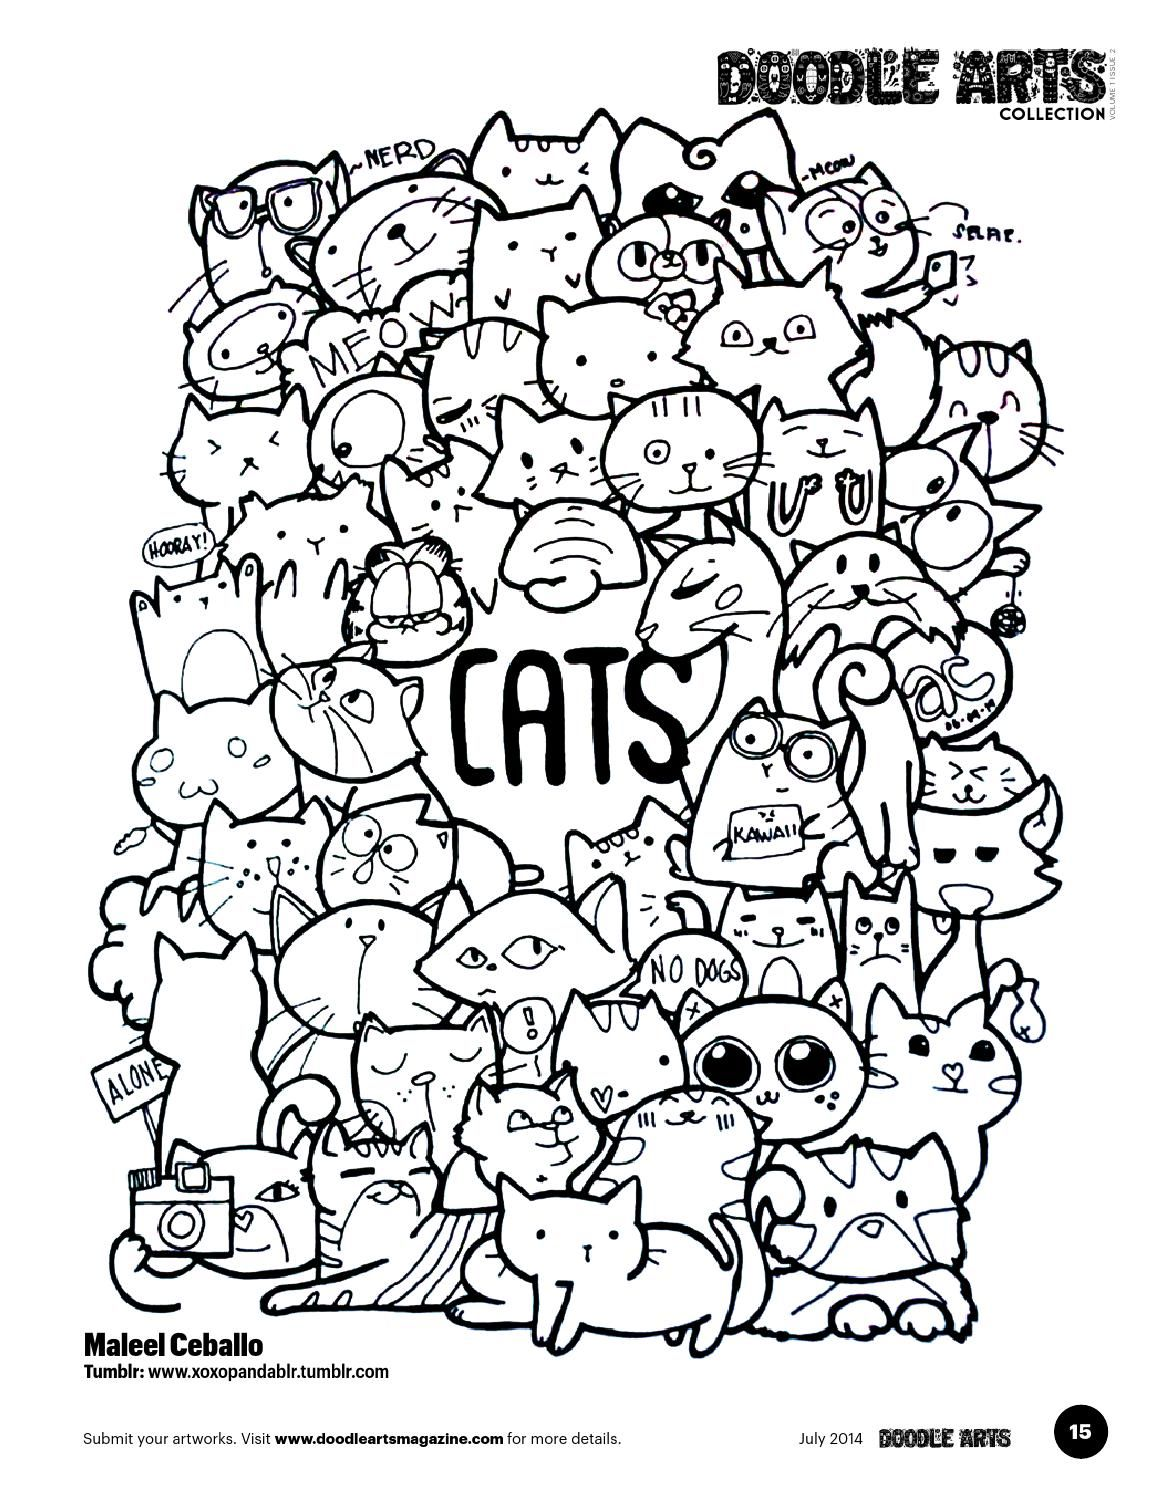 Pin By Fernanda Pasqualetto On Doodles Cute Doodle Art Doodle Coloring Cute Doodles